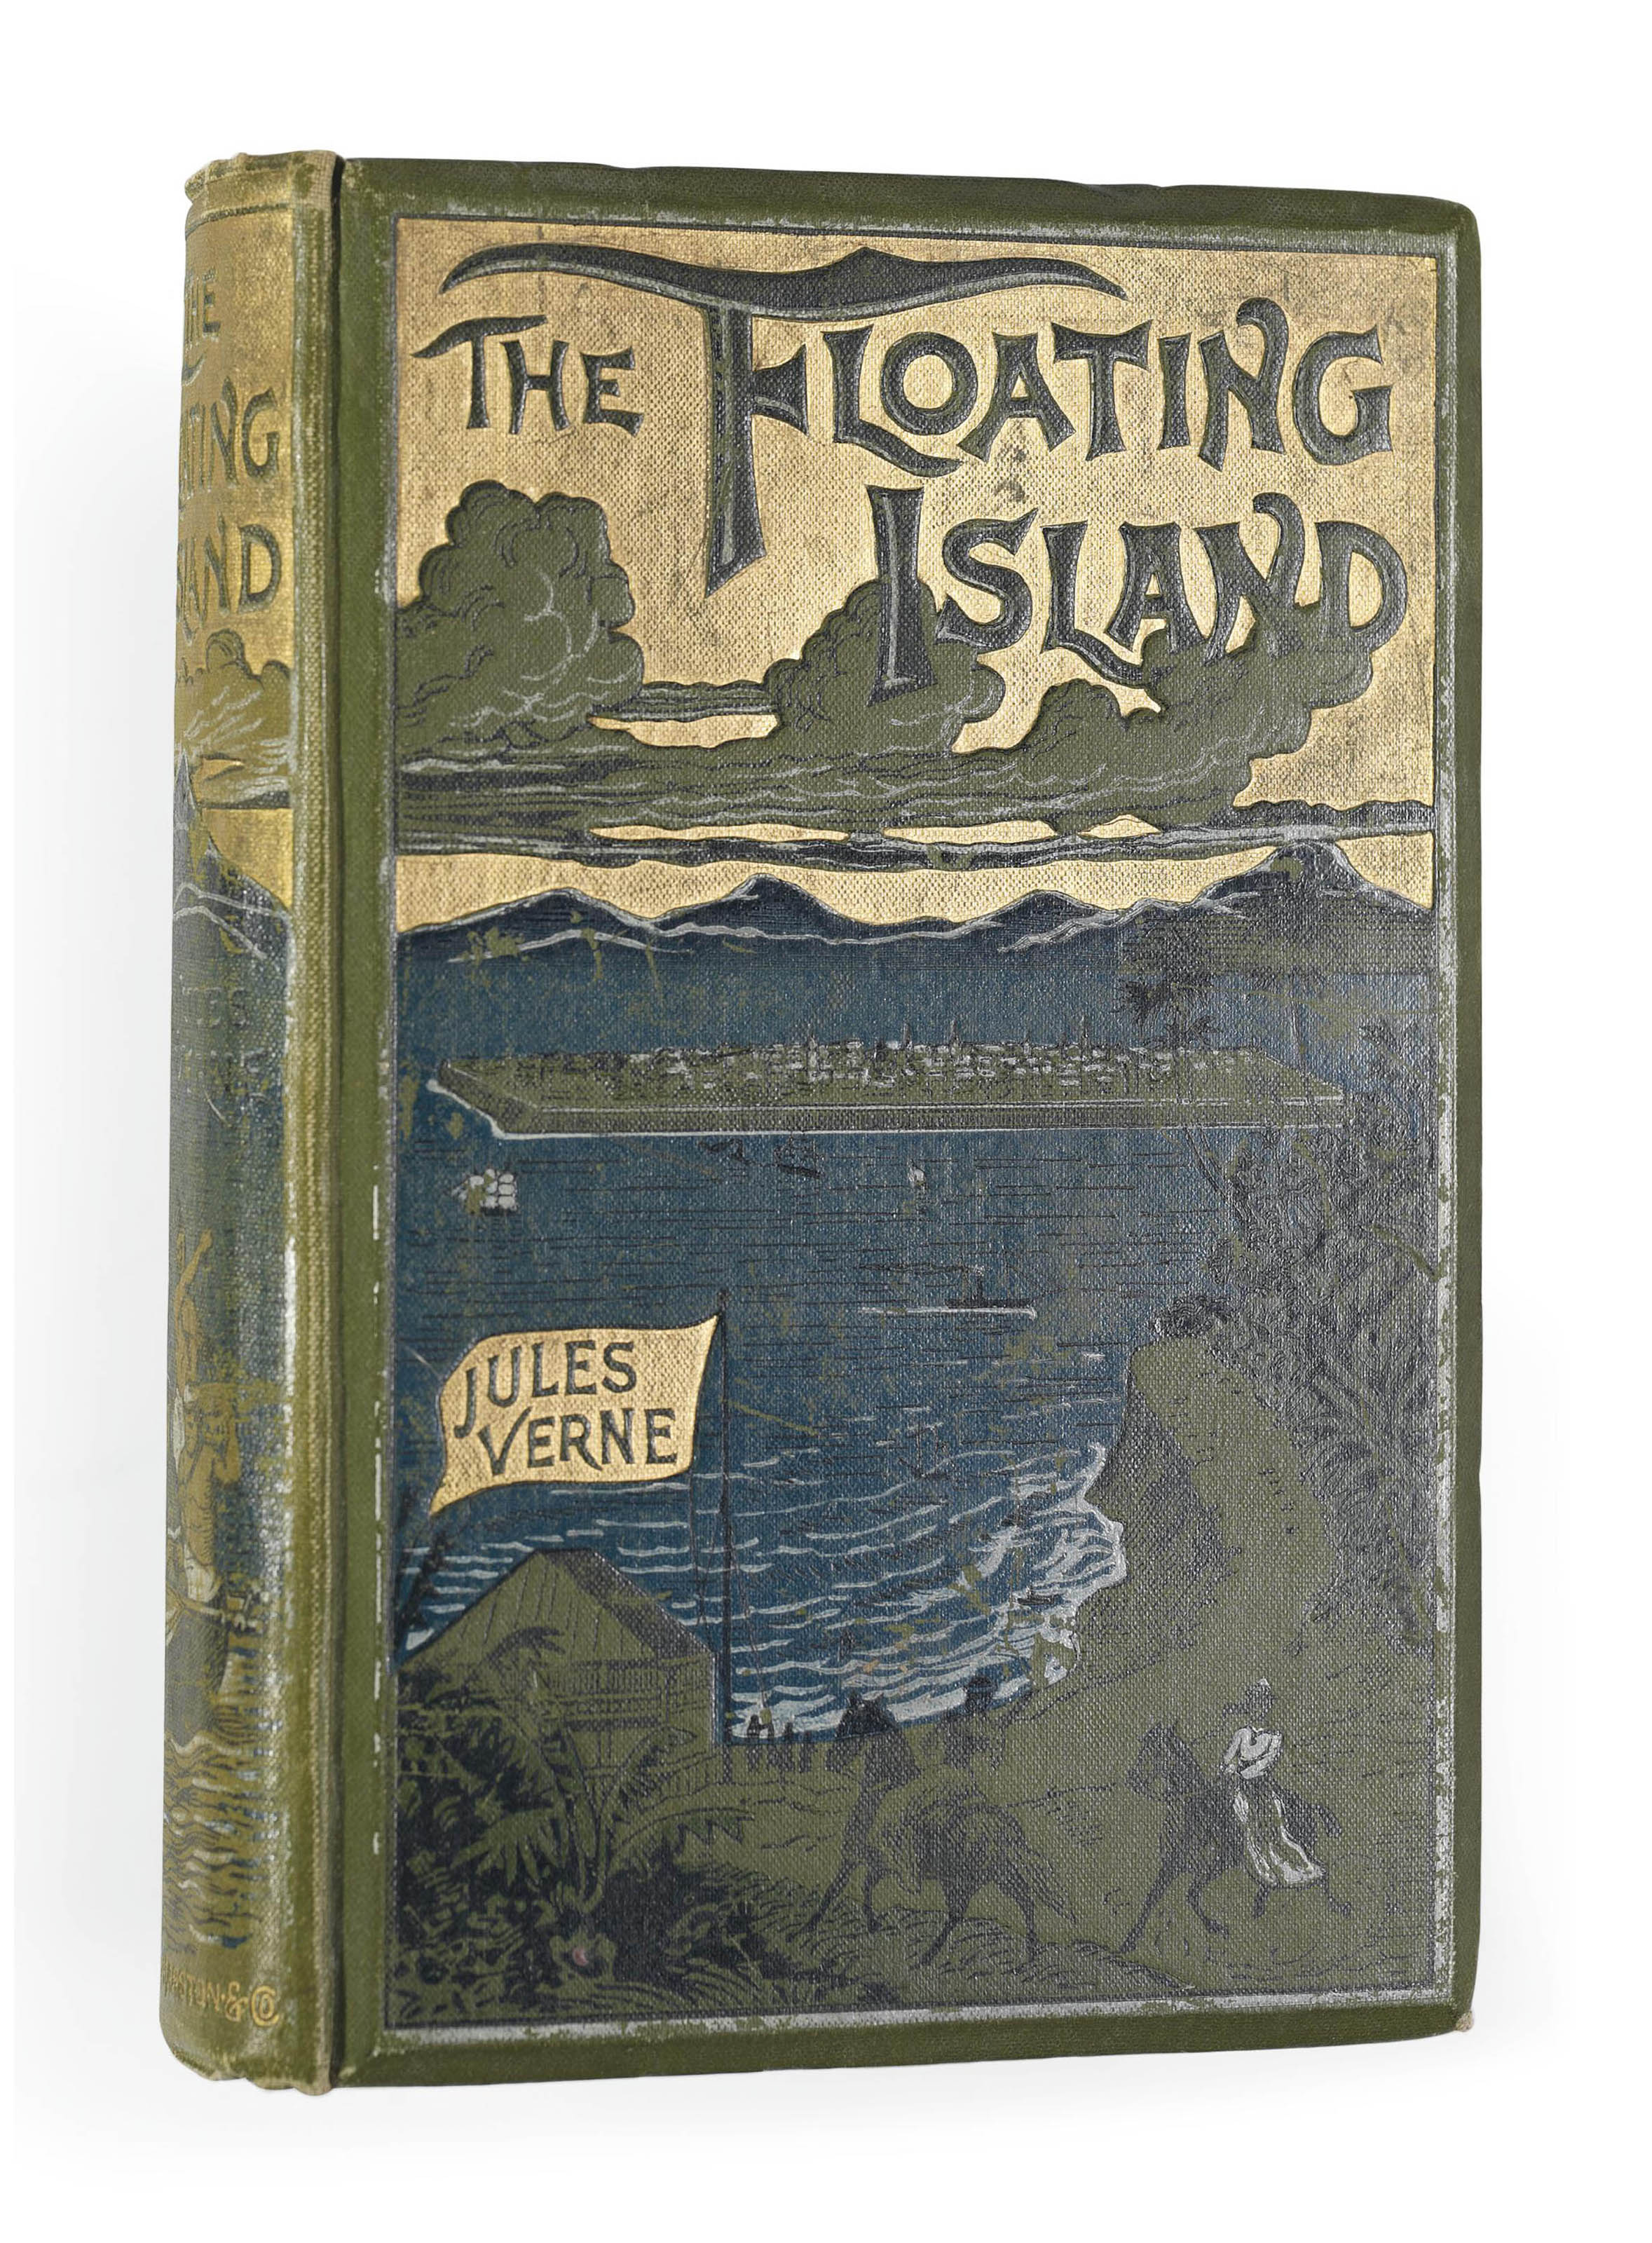 VERNE, Jules (1828-1905). The Floating Island. London: Sampson Low, Marston, 1896. 8° (180 x 120mm). 79 full-page illustrations. (Occasional light spotting.) Original green pictorial cloth, gilt edges (hinges cracked, extremities lightly rubbed). FIRST ENGLISH EDITION.